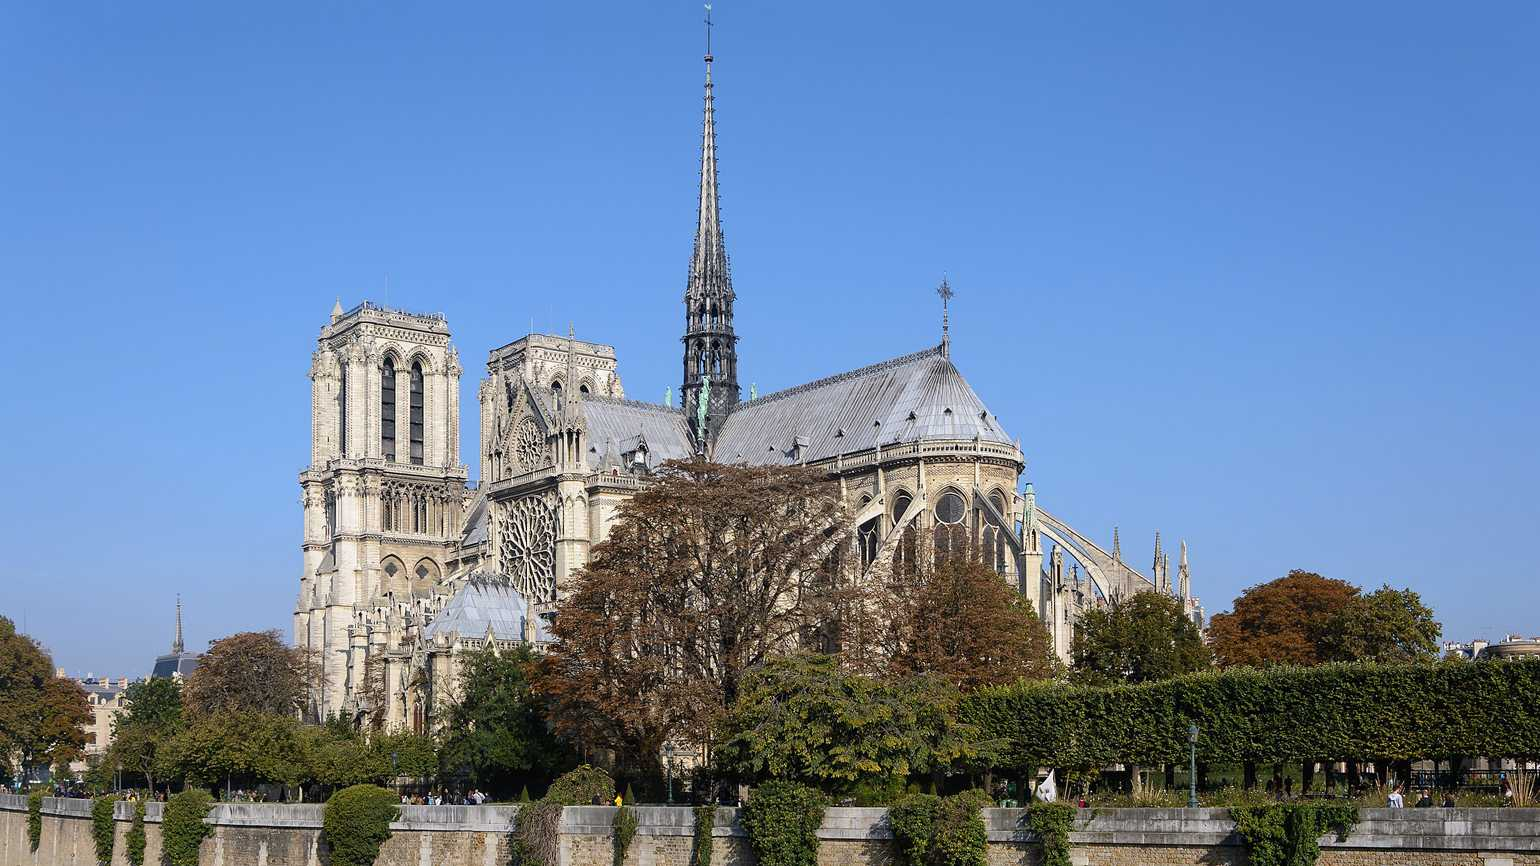 The Notre-Dame Cathedral in Paris.